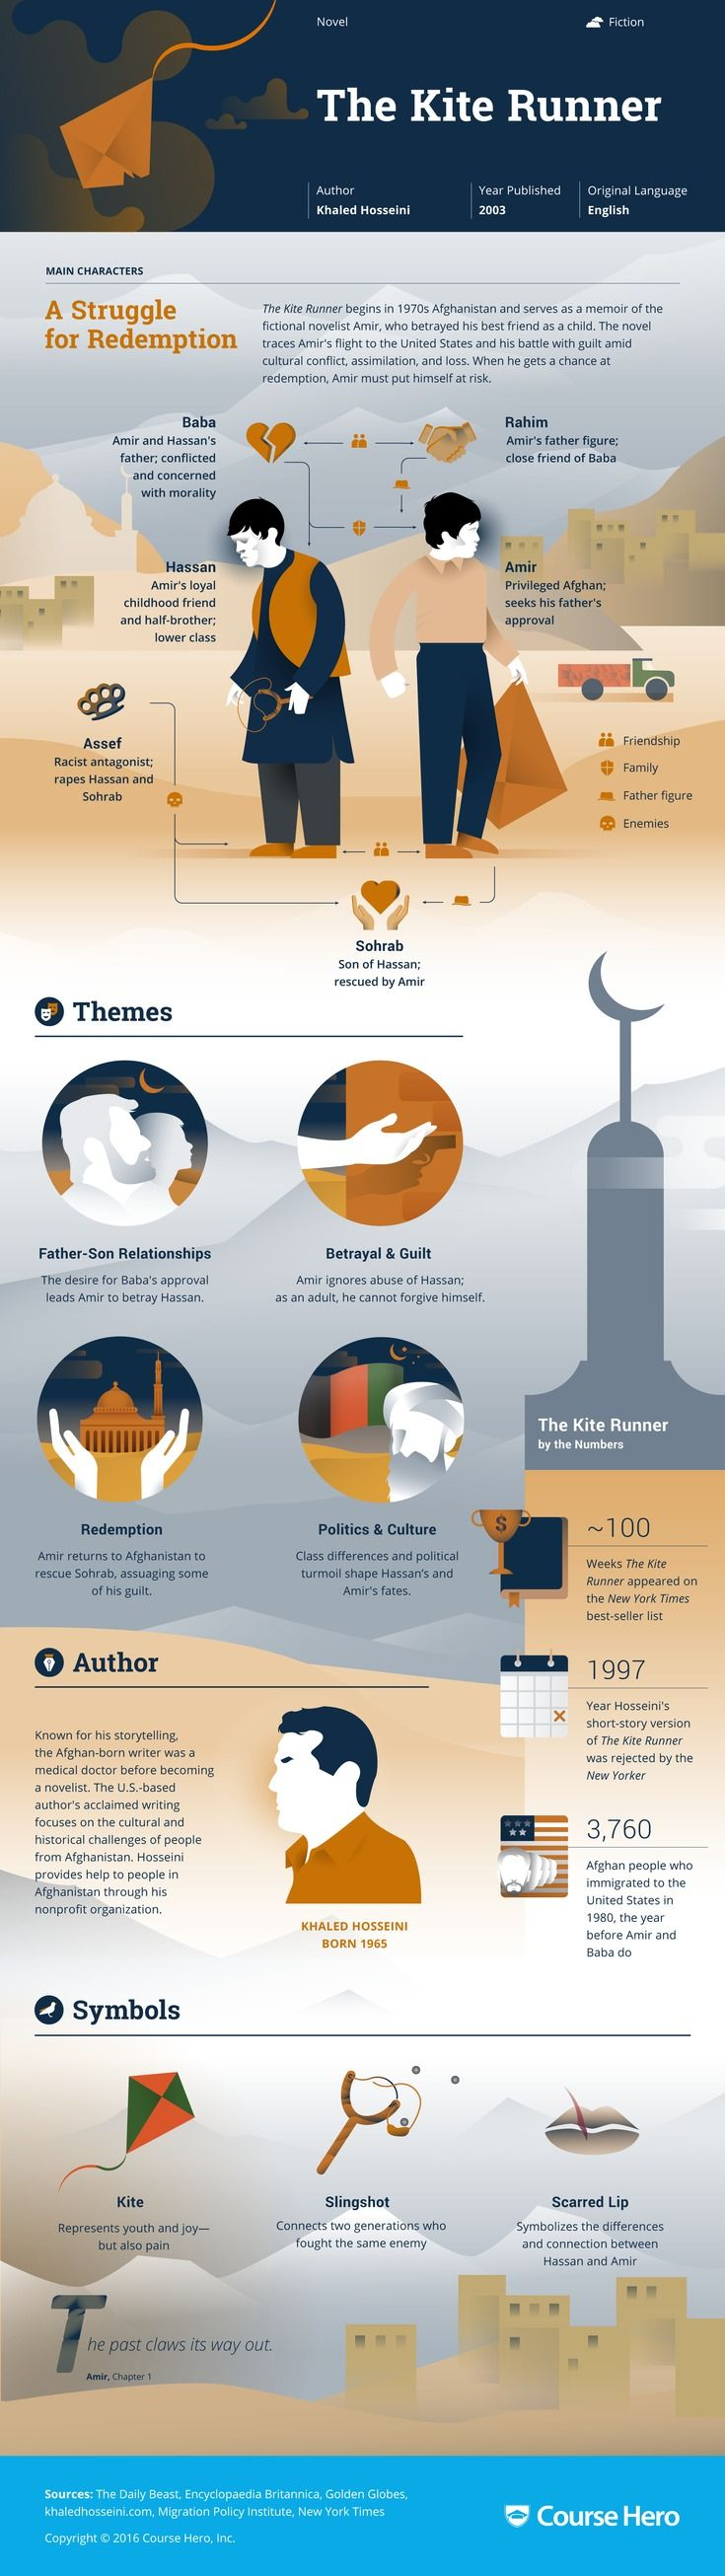 best ideas about the kite runner film the kite this coursehero infographic on the kite runner is both visually stunning and informative